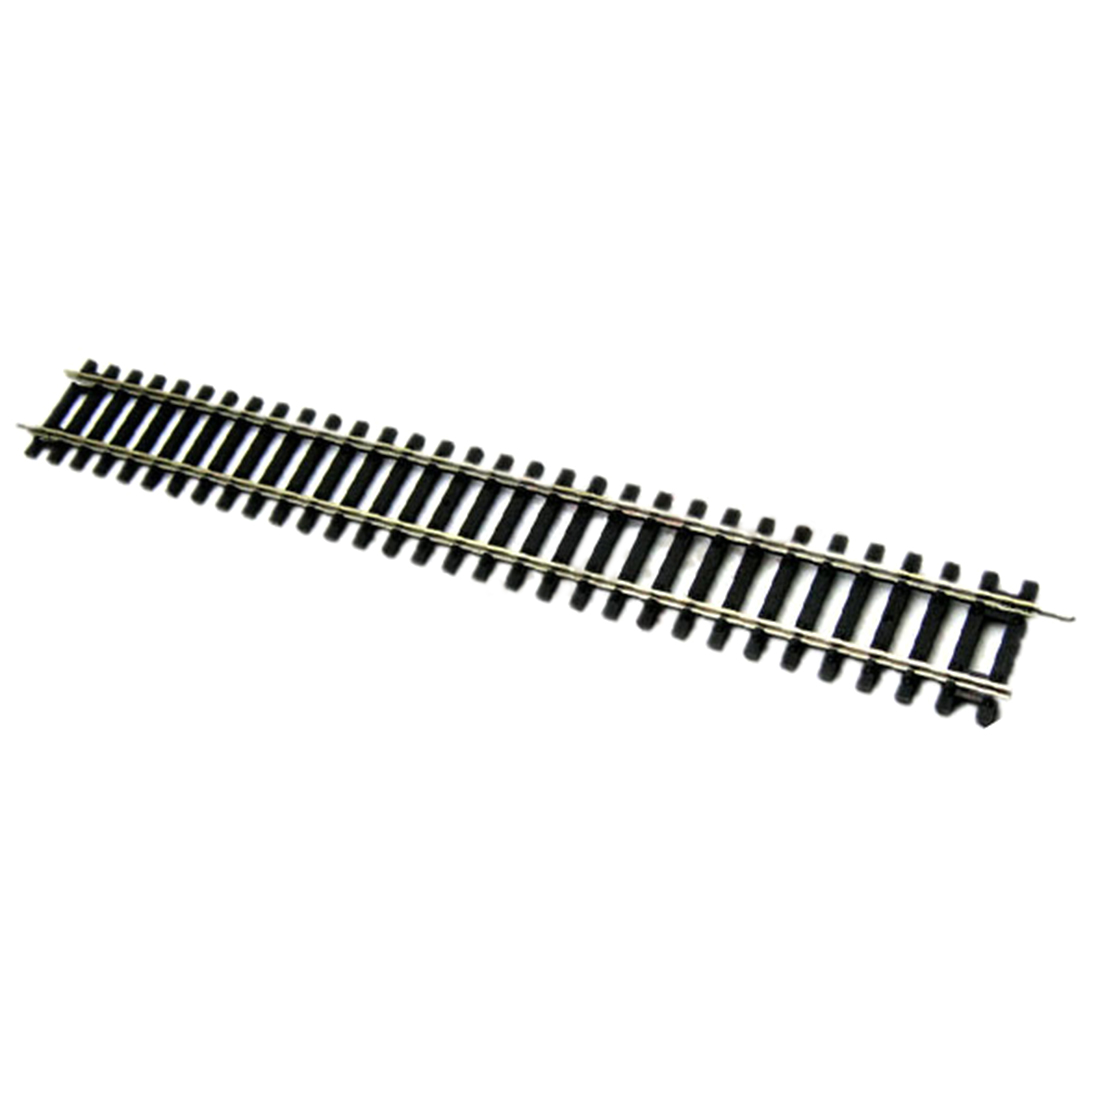 1:87 G231 55201 231mm Straight Rail For HO Scale Train Model Buy10 Get 1 Free Gift Christmas New Year 2019 - Black